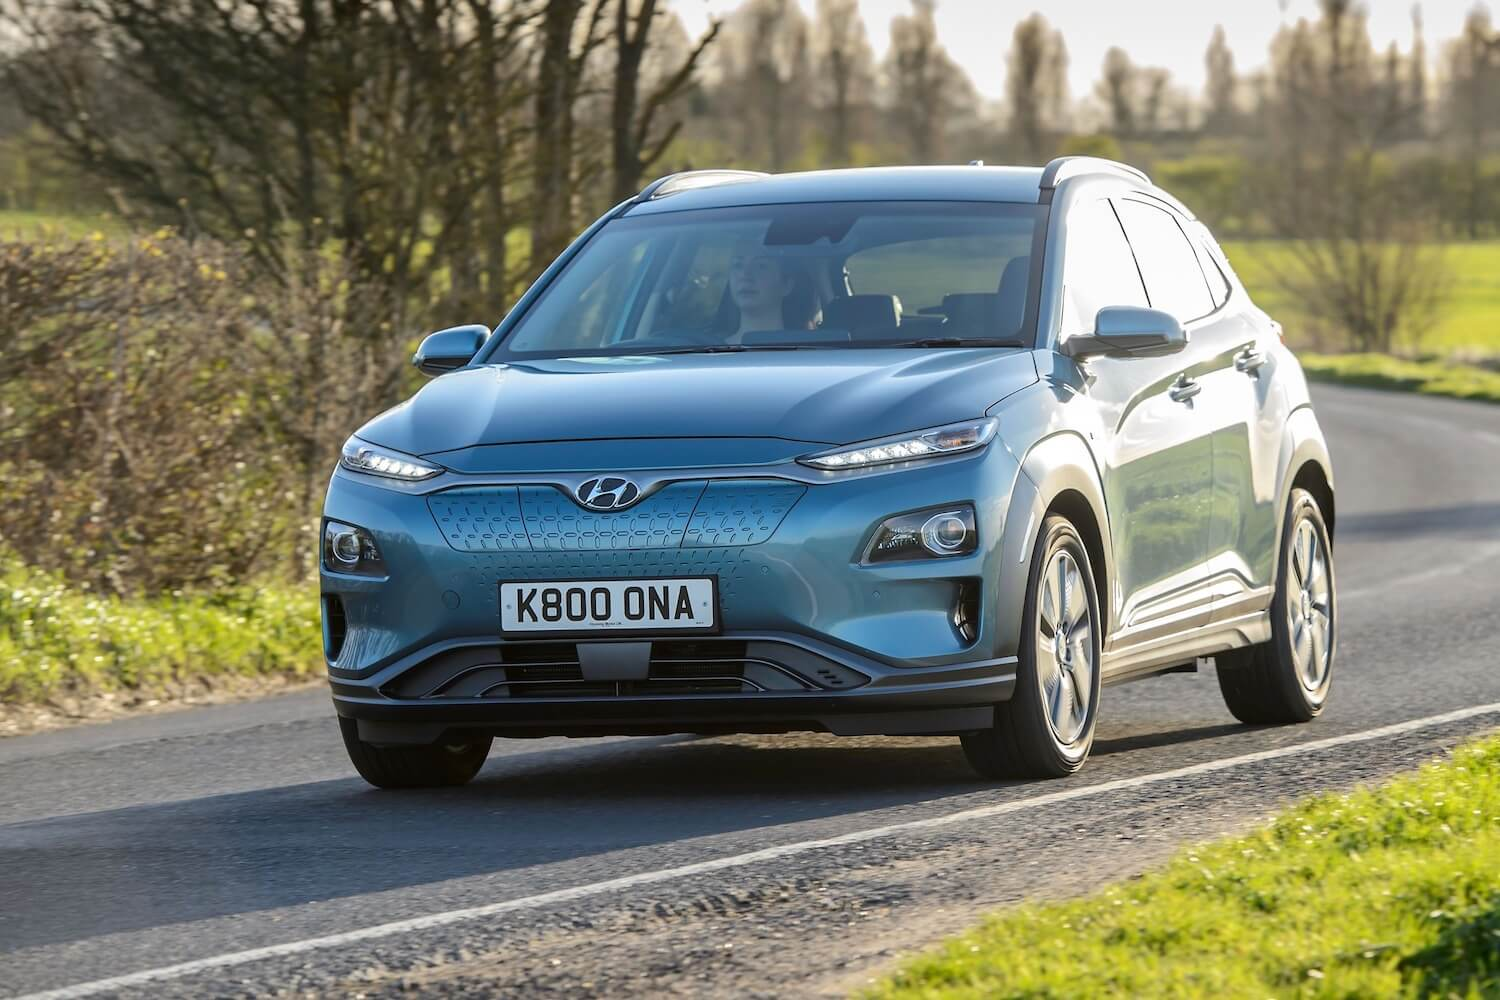 Hyundai Kona Electric Waiting Times Slashed From Months To Days Greencarguide Co Uk